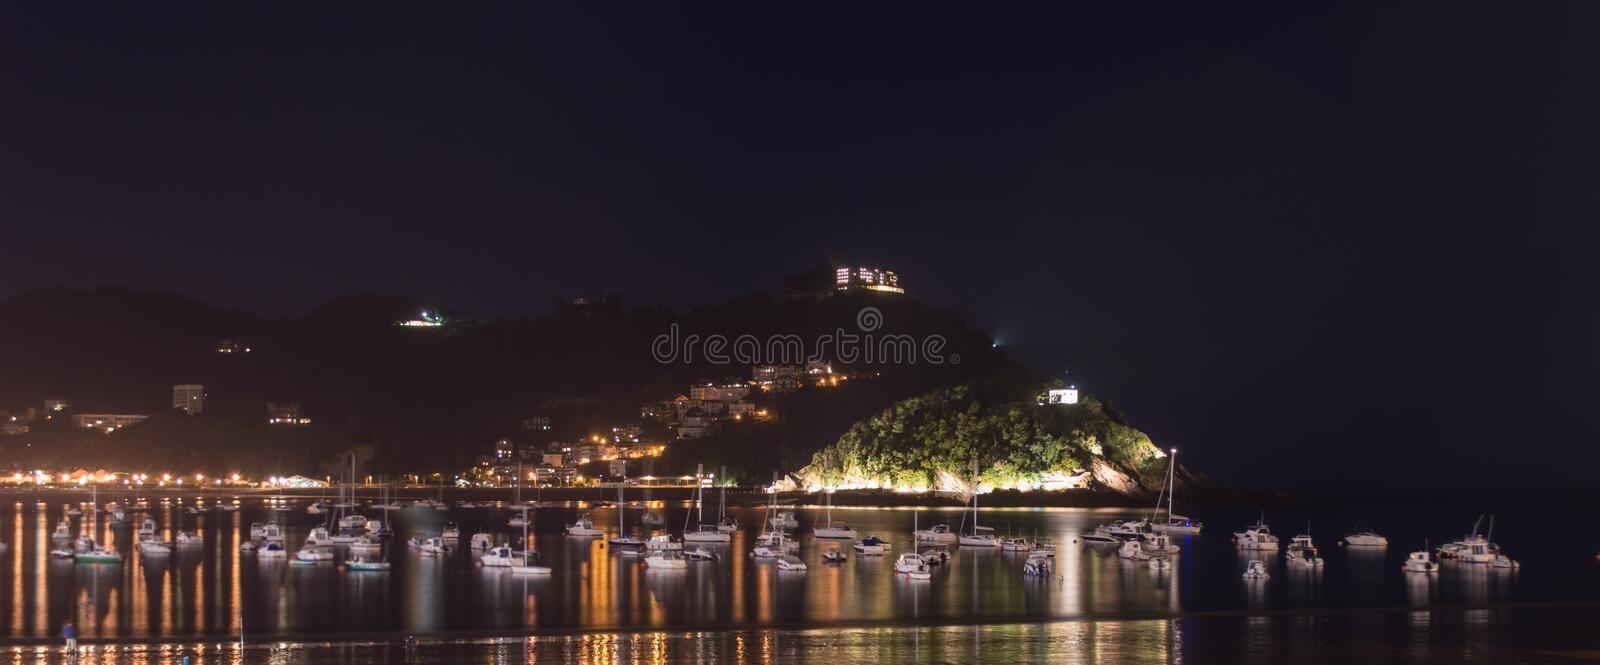 San Sebastian beach at night. Night on San Sebastian bay beach. Yacht and boat moored in the bay, light on the background royalty free stock images